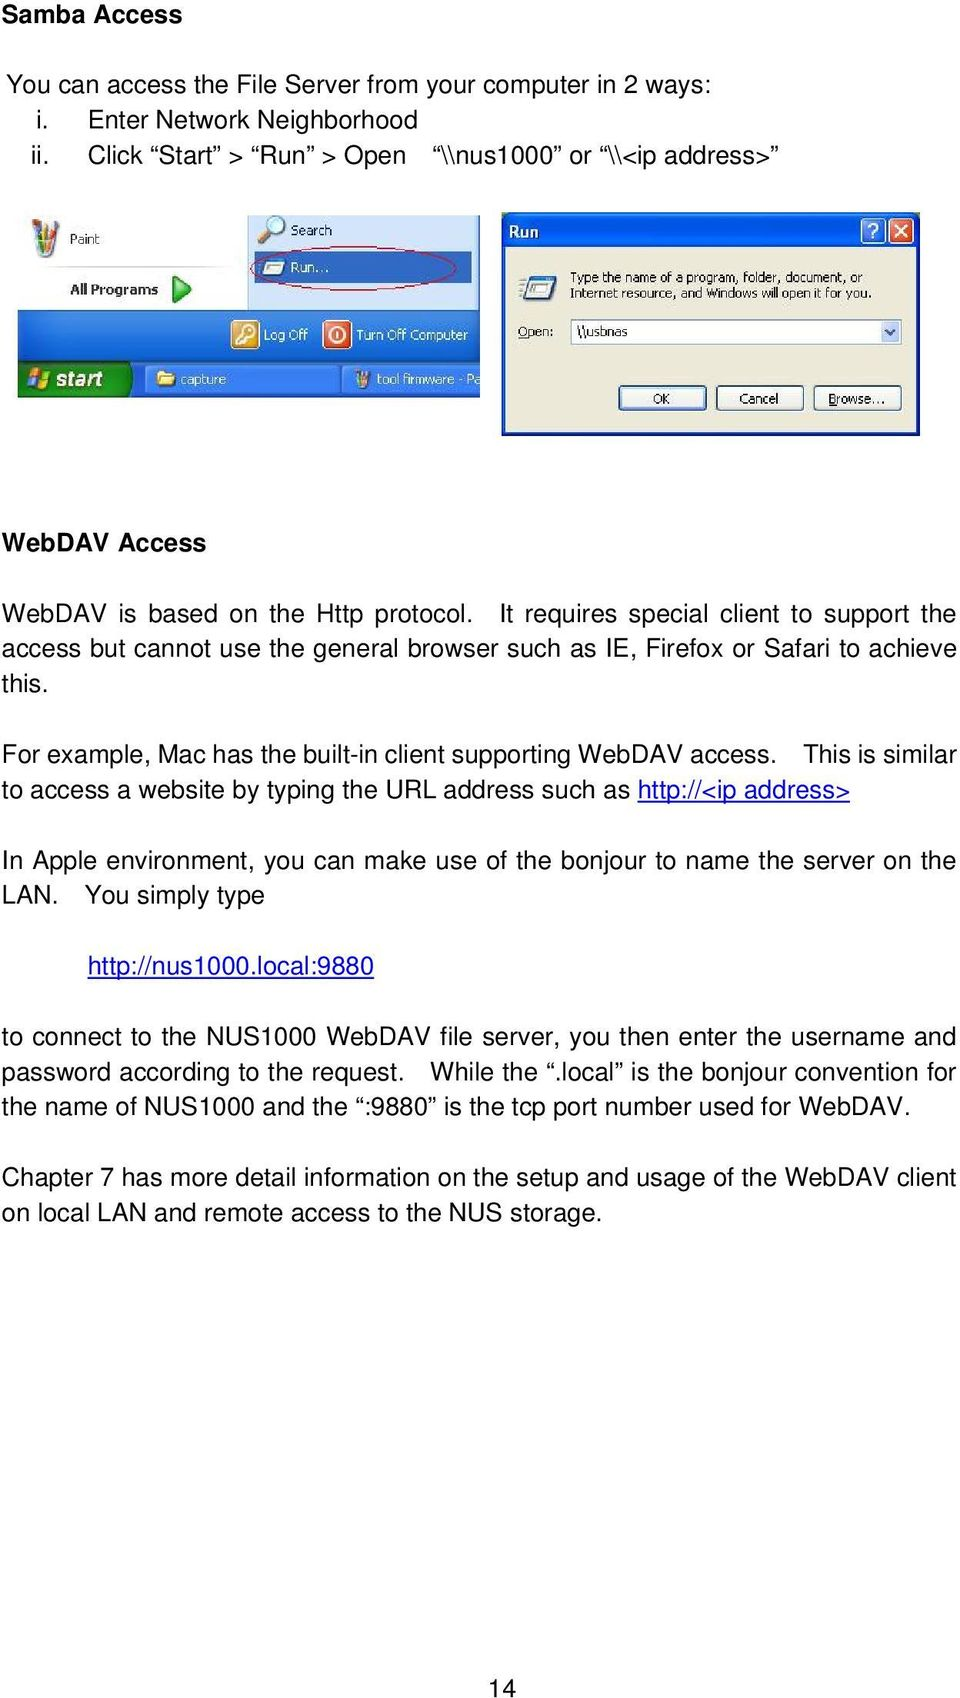 It requires special client to support the access but cannot use the general browser such as IE, Firefox or Safari to achieve this. For example, Mac has the built-in client supporting WebDAV access.